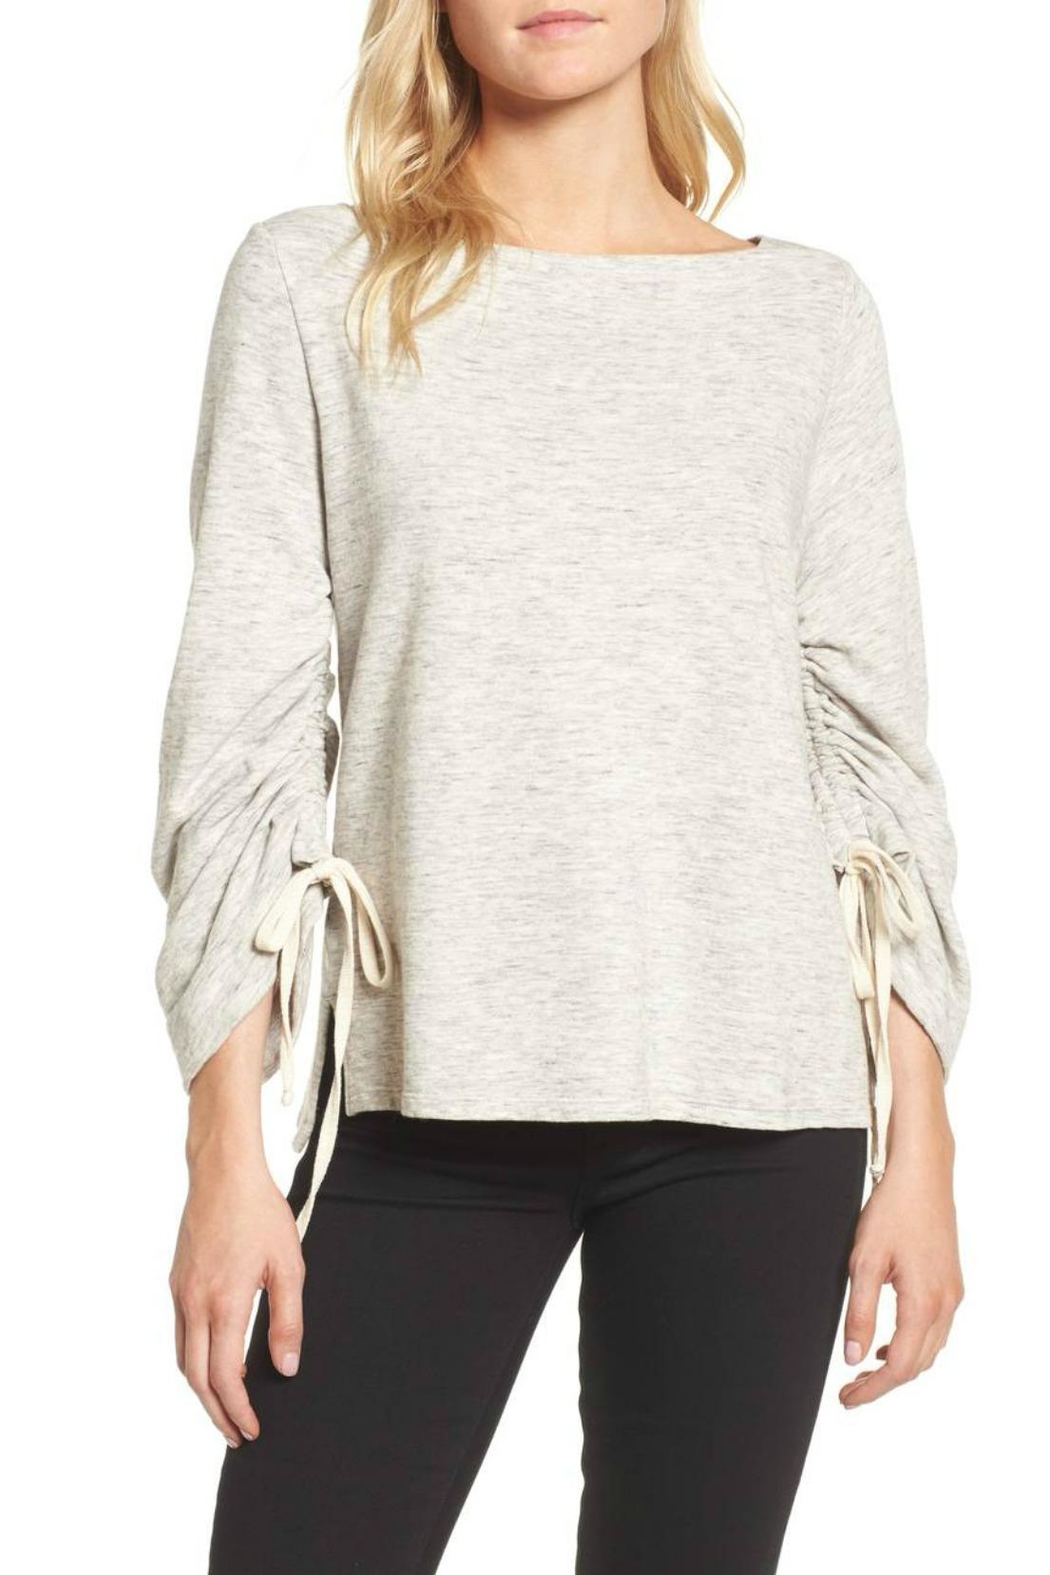 Ella Moss Ruched Sleeve Sweatshirt - Front Cropped Image